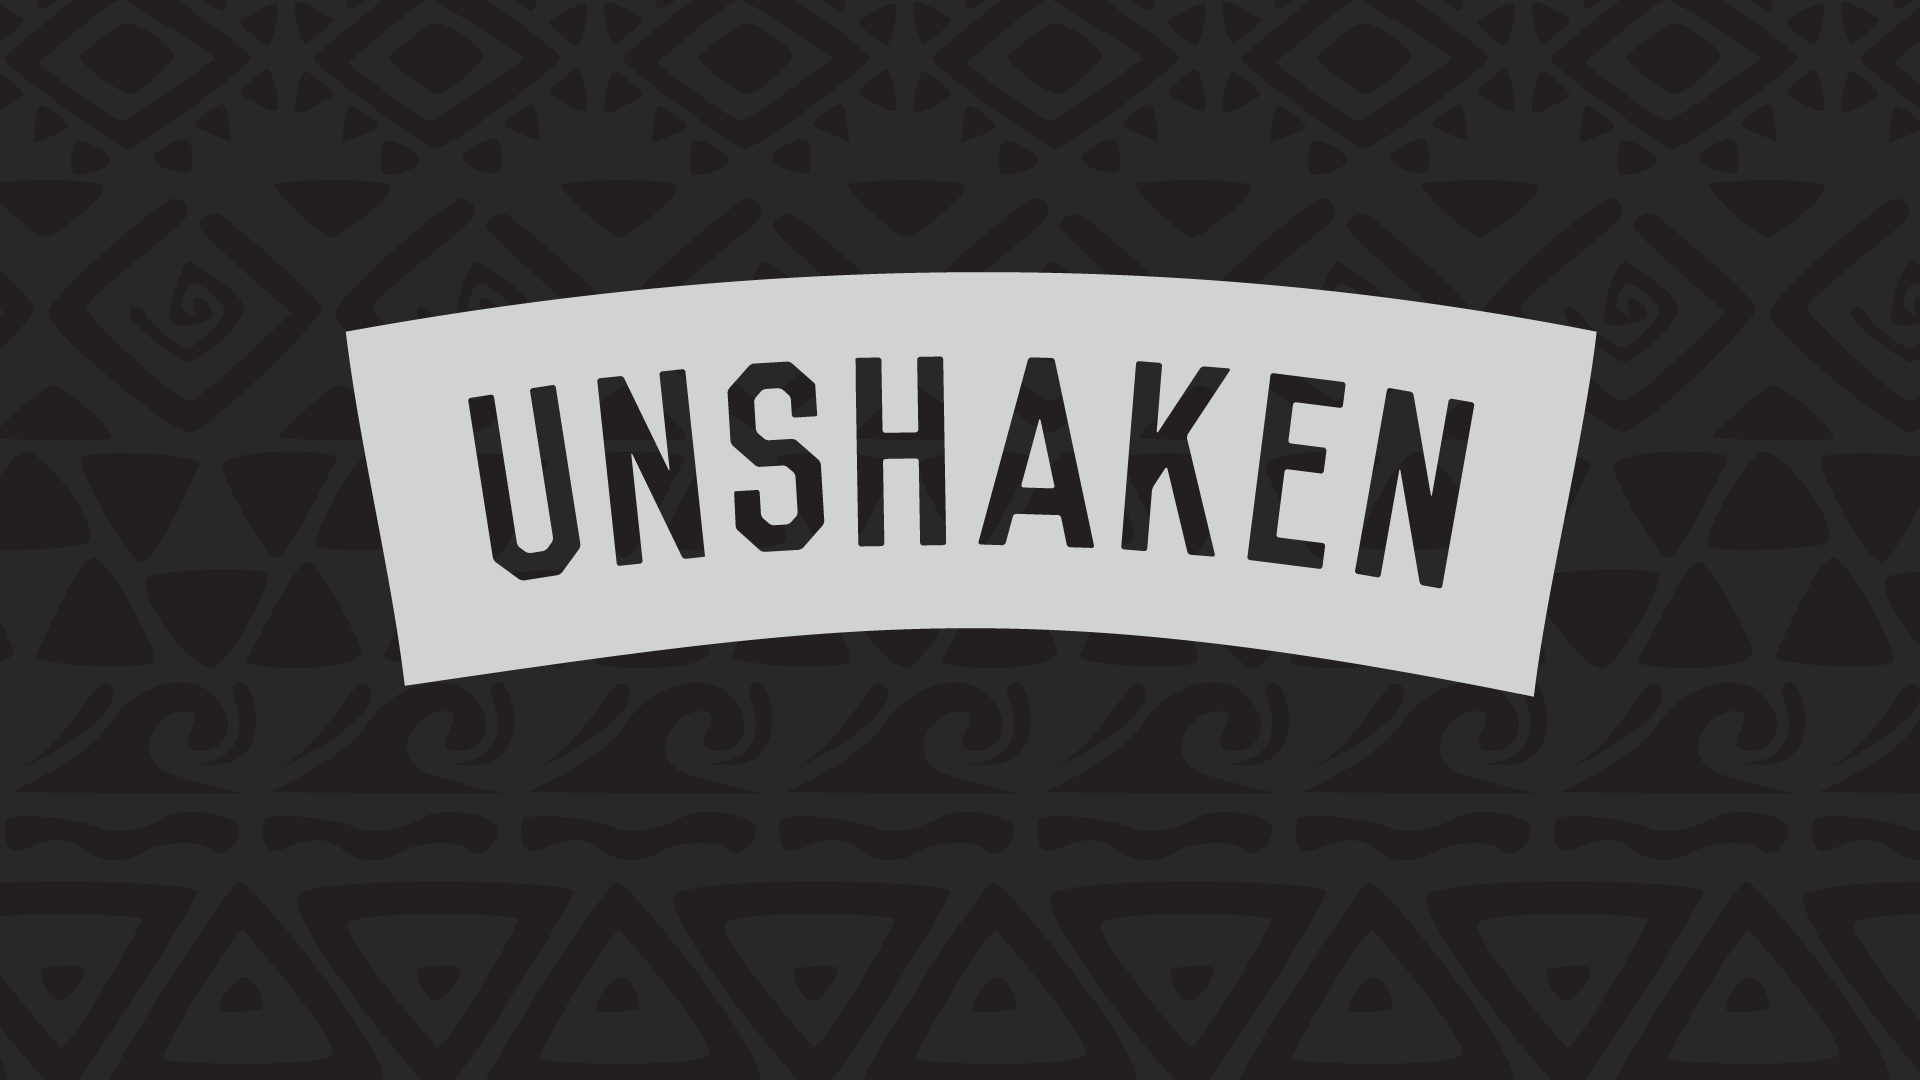 Unshaken by Our Sin Disease